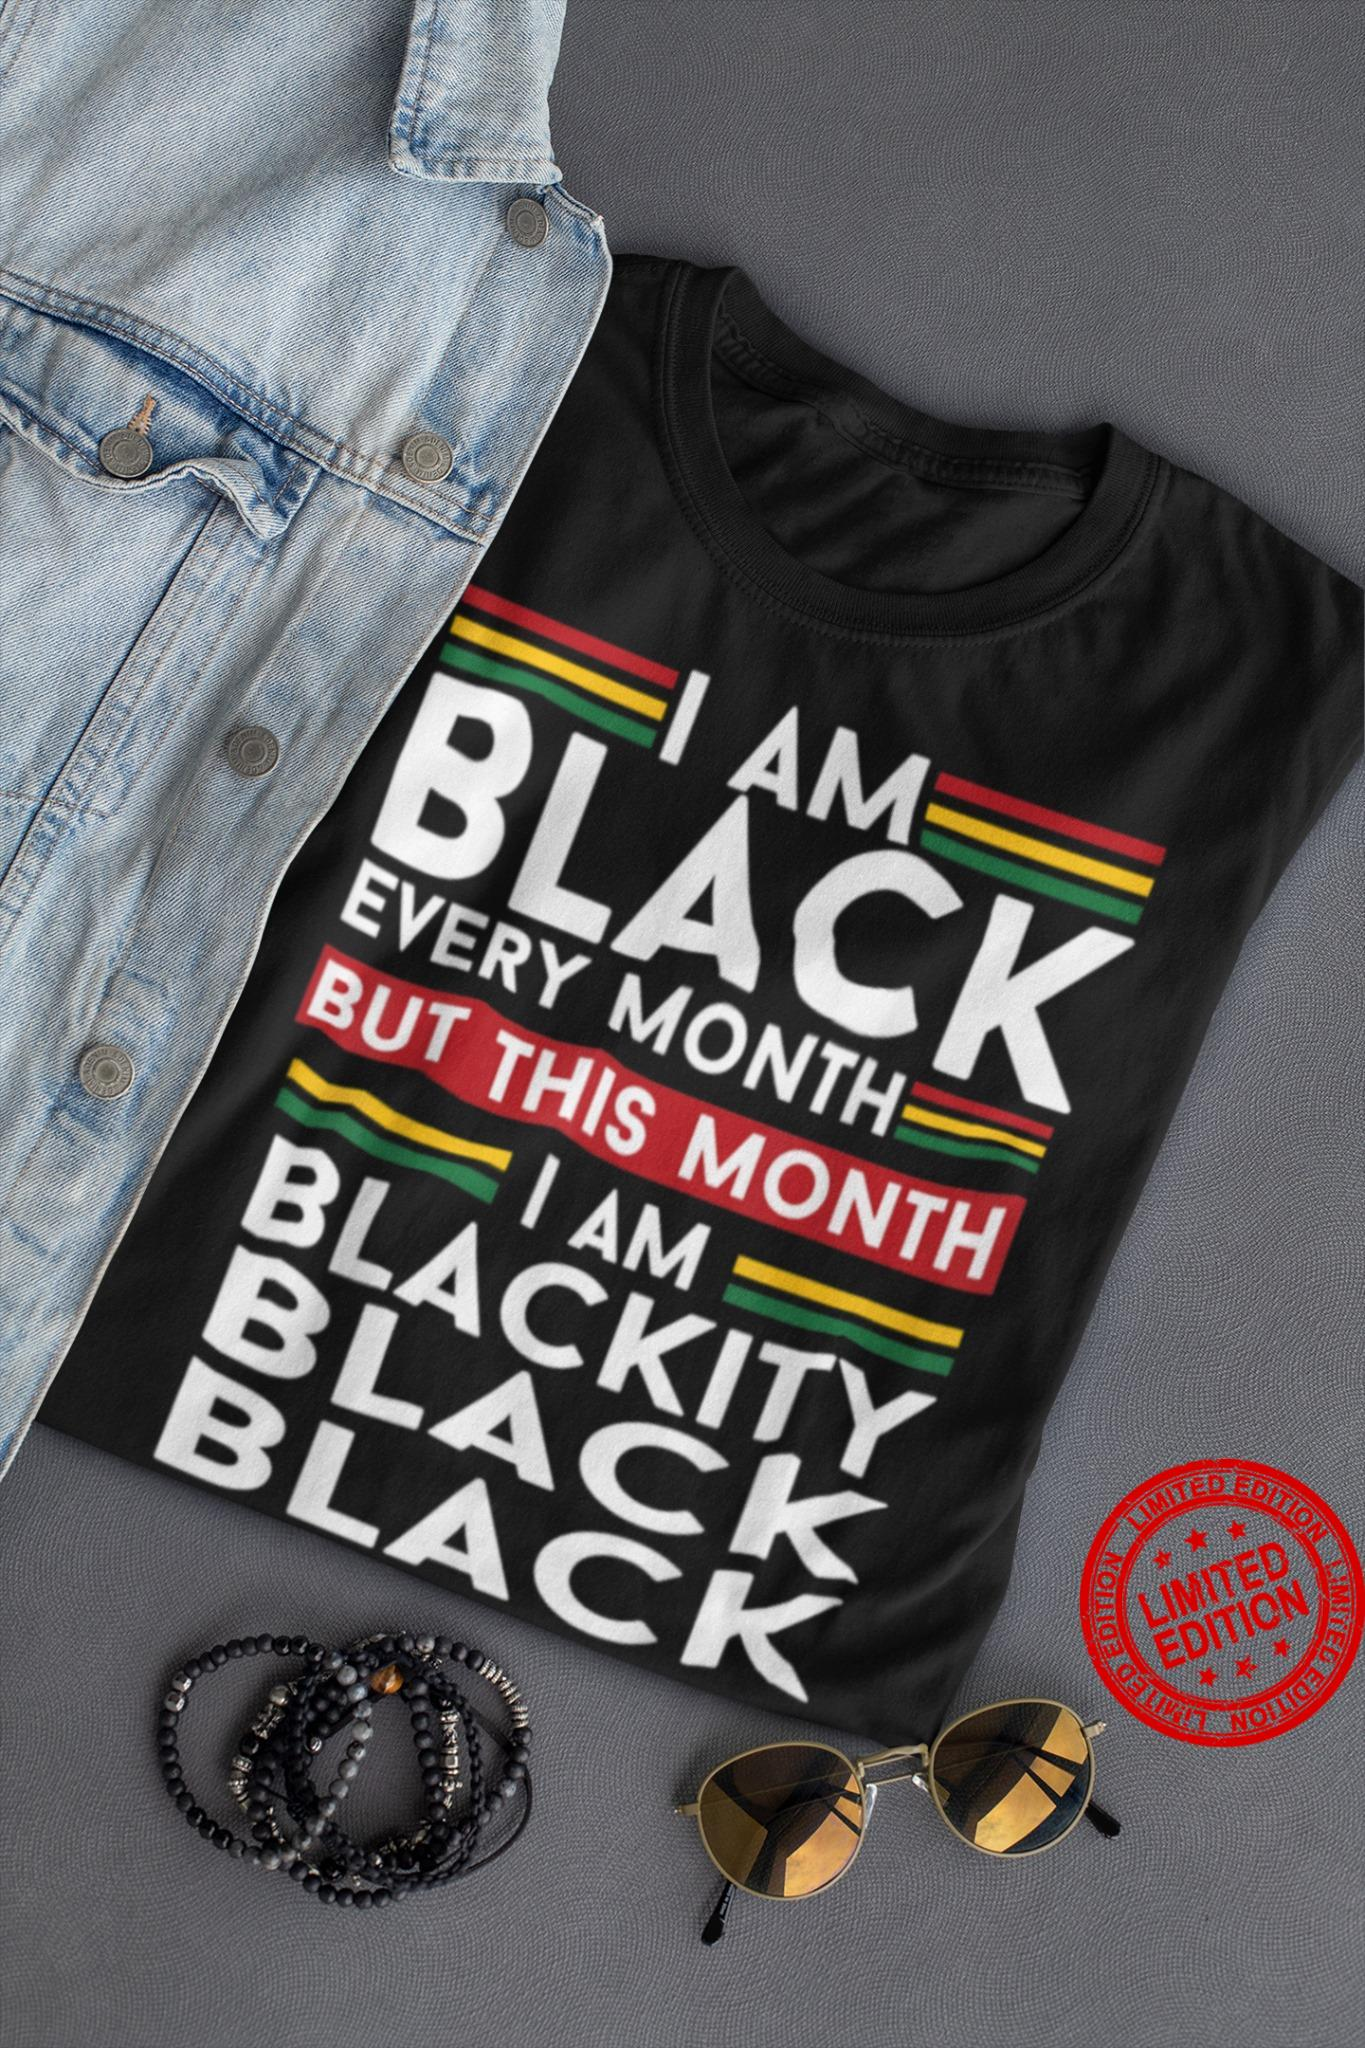 I Am Black Every Month But This Mouth I Am Blackity Shirt